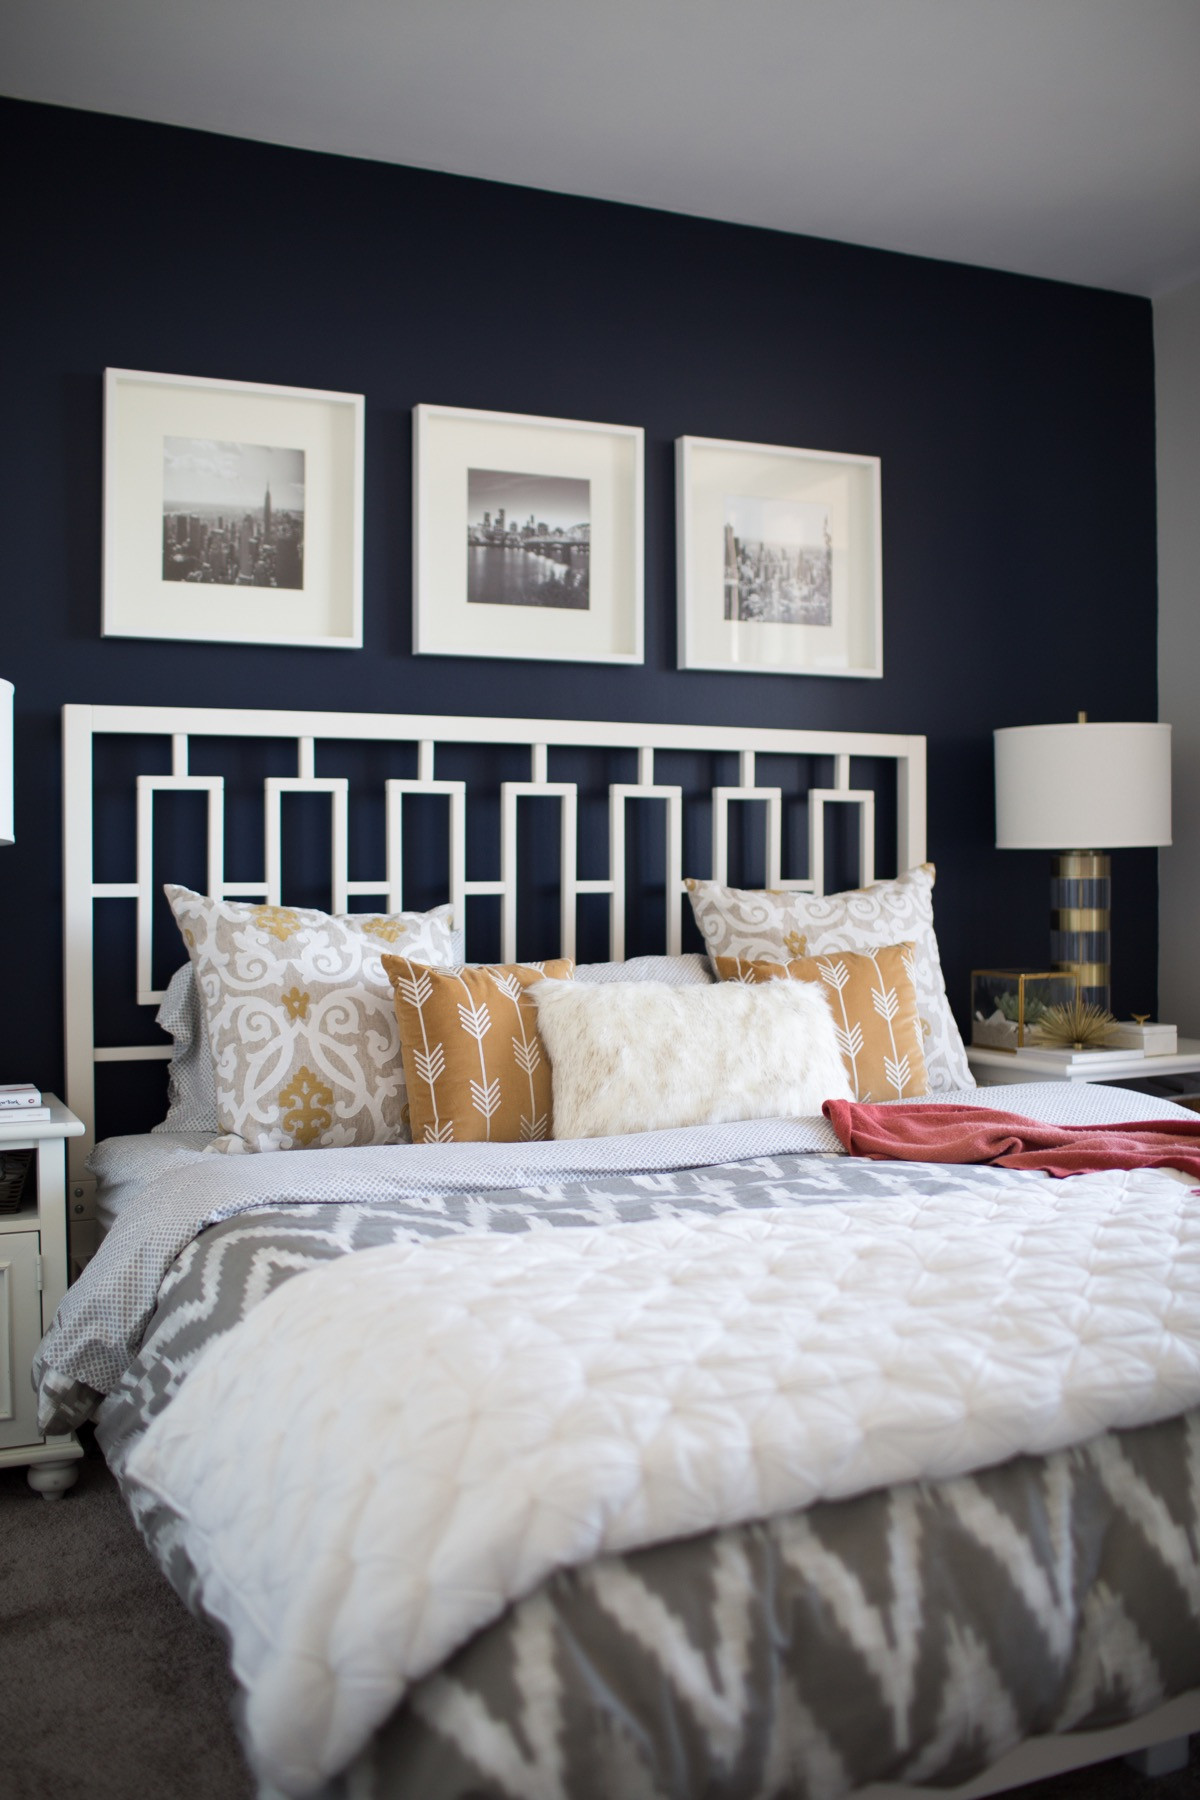 Wall Pictures For Bedroom  A Look Inside A Blogger s Navy and Mustard Bedroom My